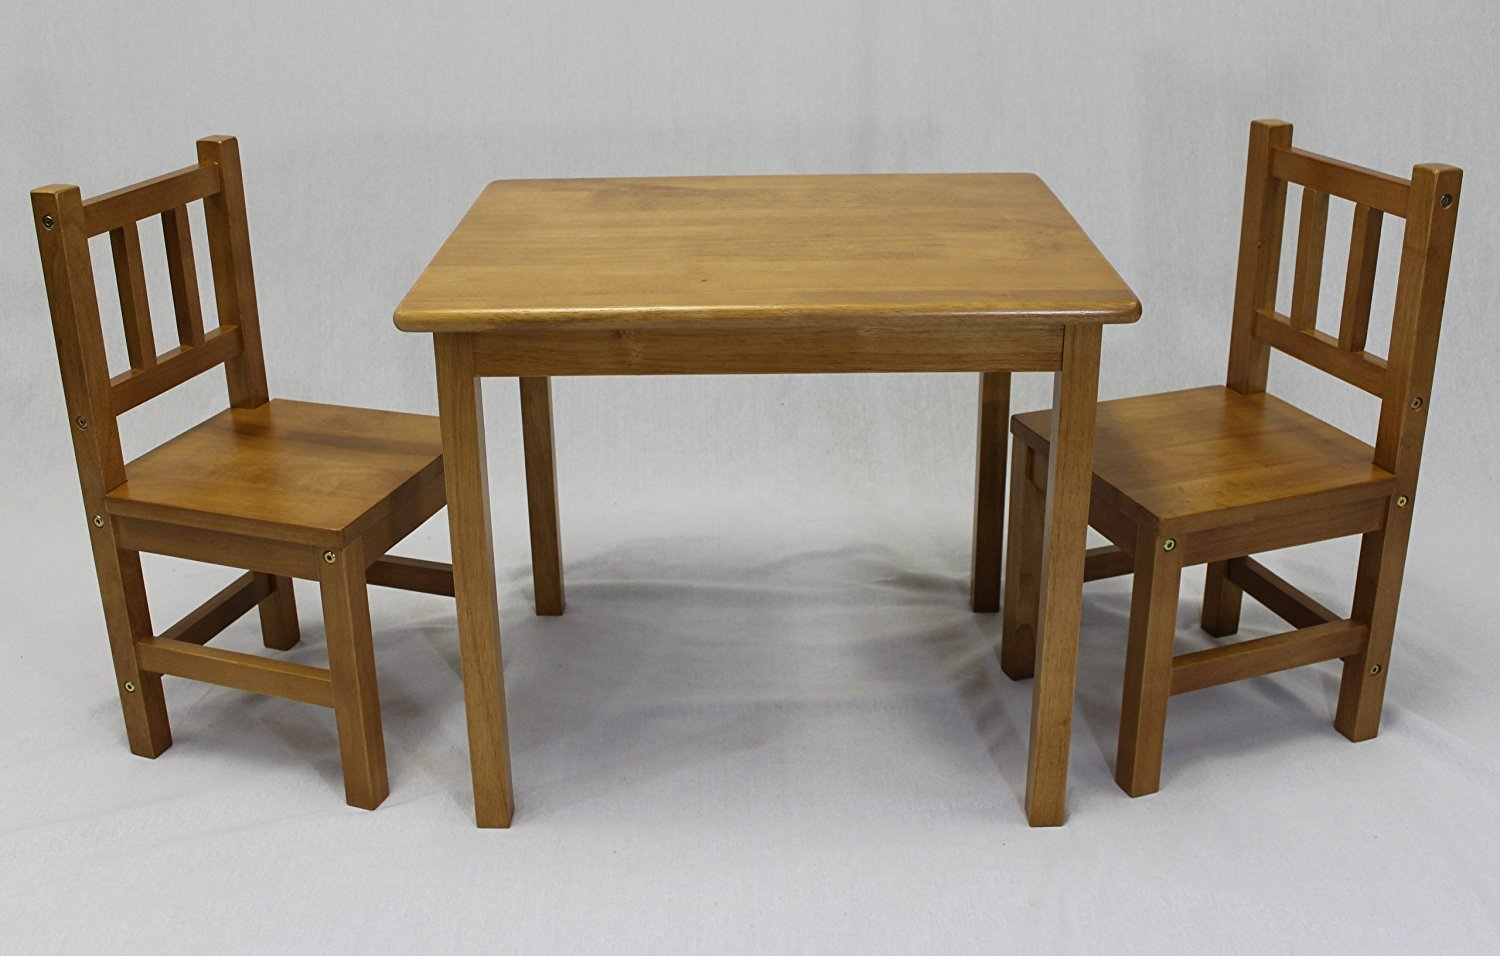 Childrens Table And Chair Set Ehemco Kids Table And 2 Chairs Set In Honey Oak